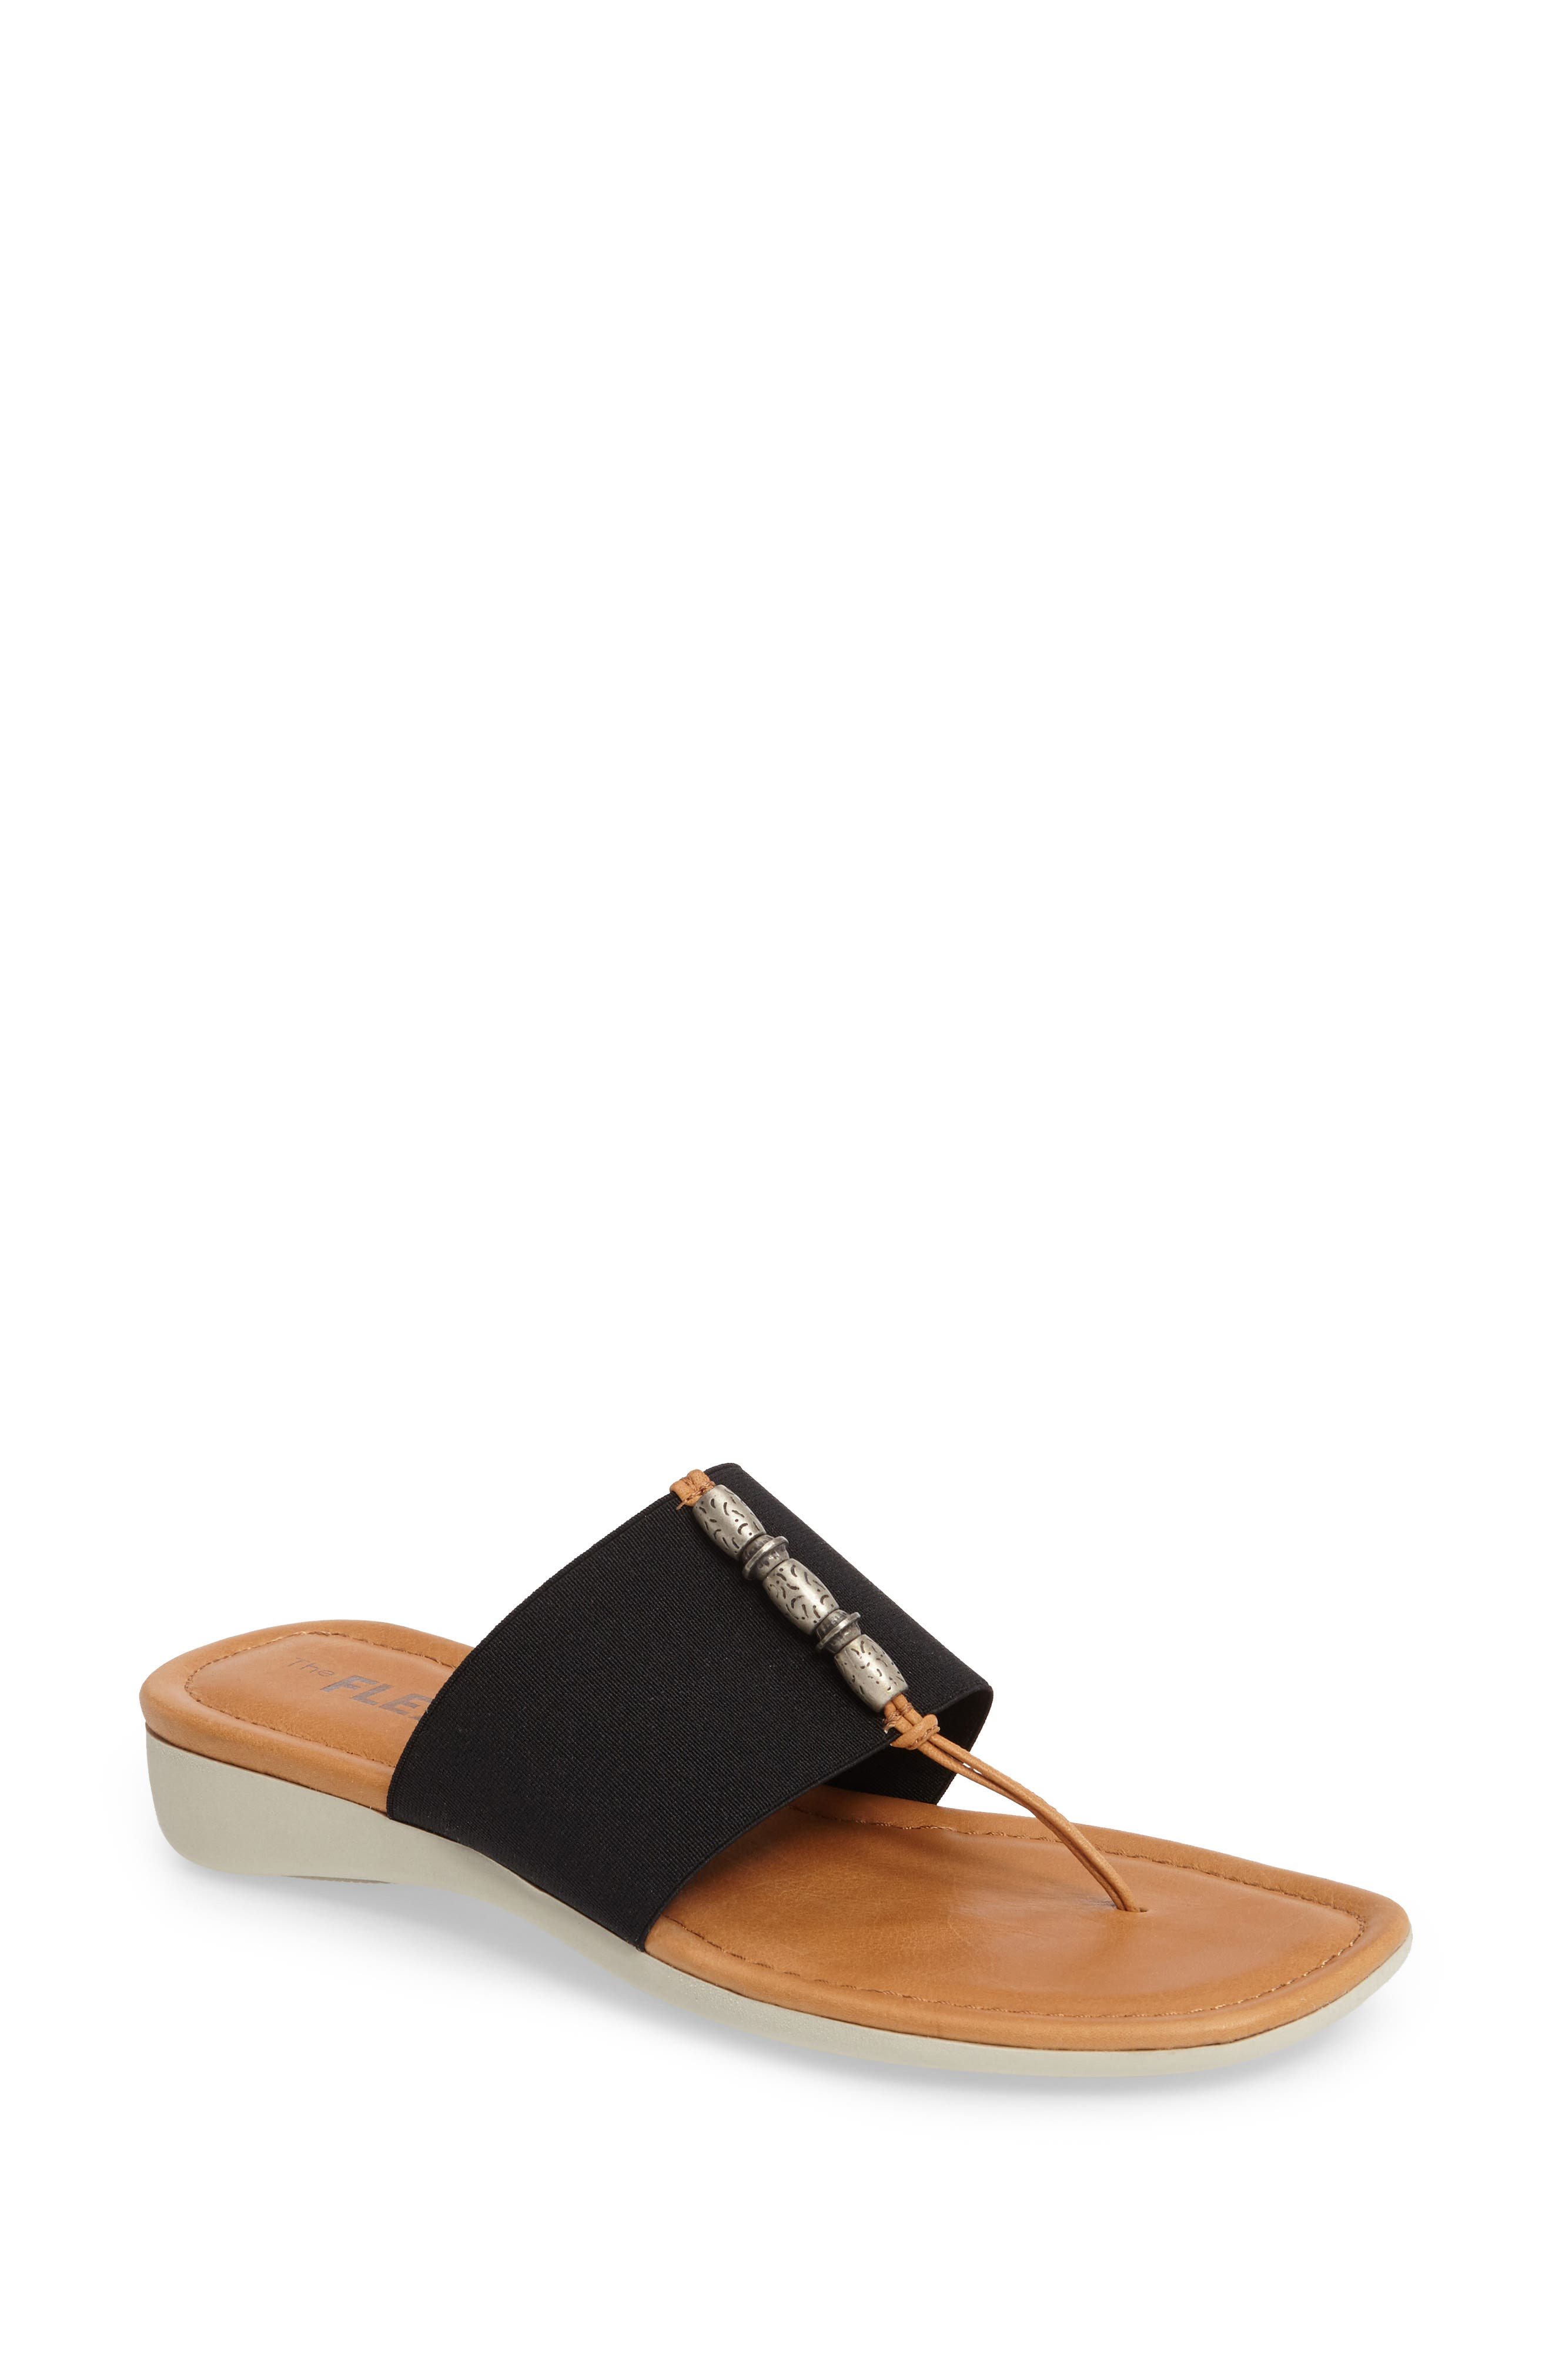 Alternate Image 1 Selected - The FLEXX Rain Maker Sandal (Women)